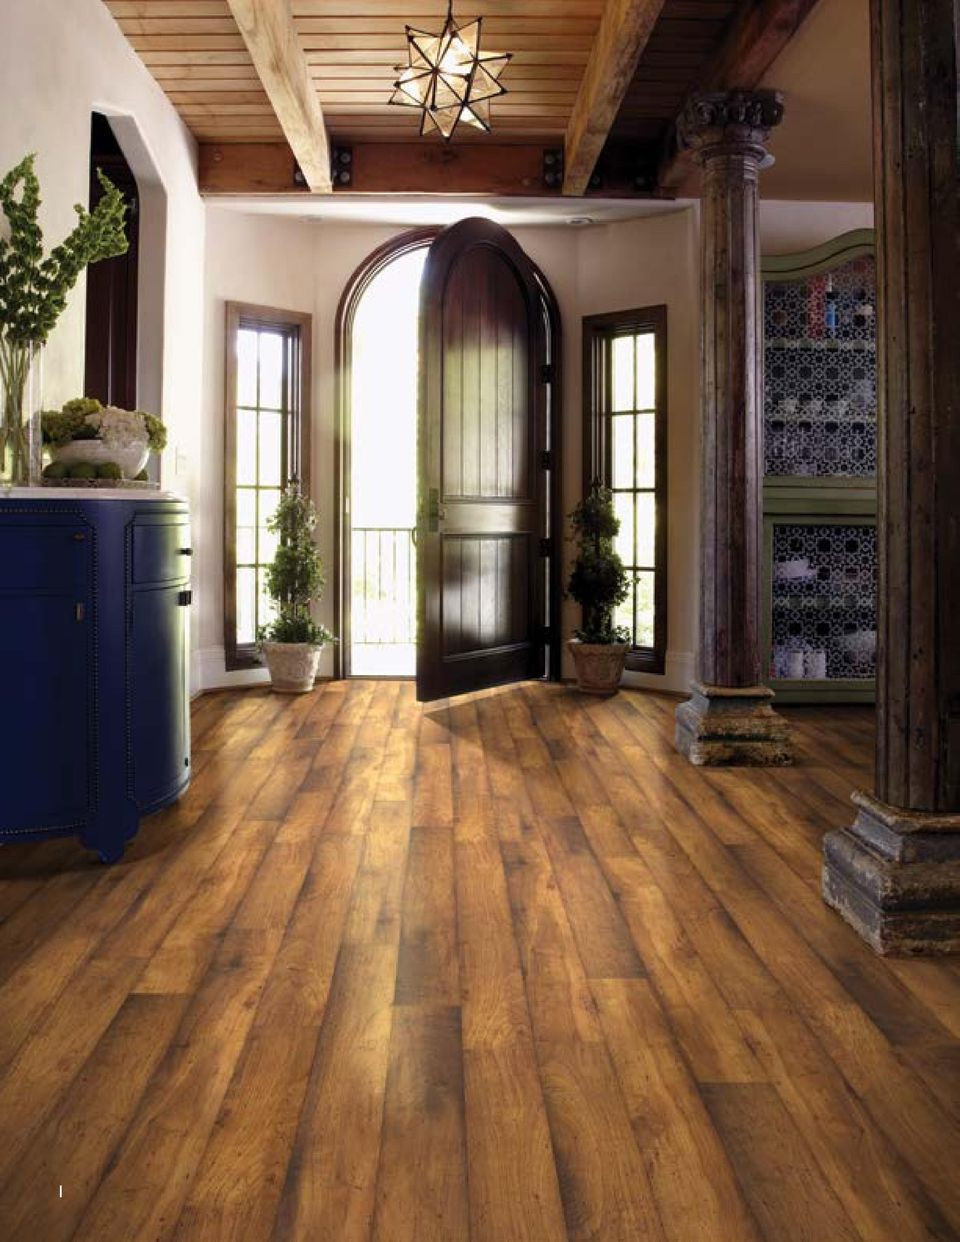 shaw engineered hardwood flooring care of hard surface warranties care maintenance laminate shawfloors com inside 3 contents laminate care maintenance 3 warranty 4 shaw represents a promise of outstanding performance unique styling and overall value